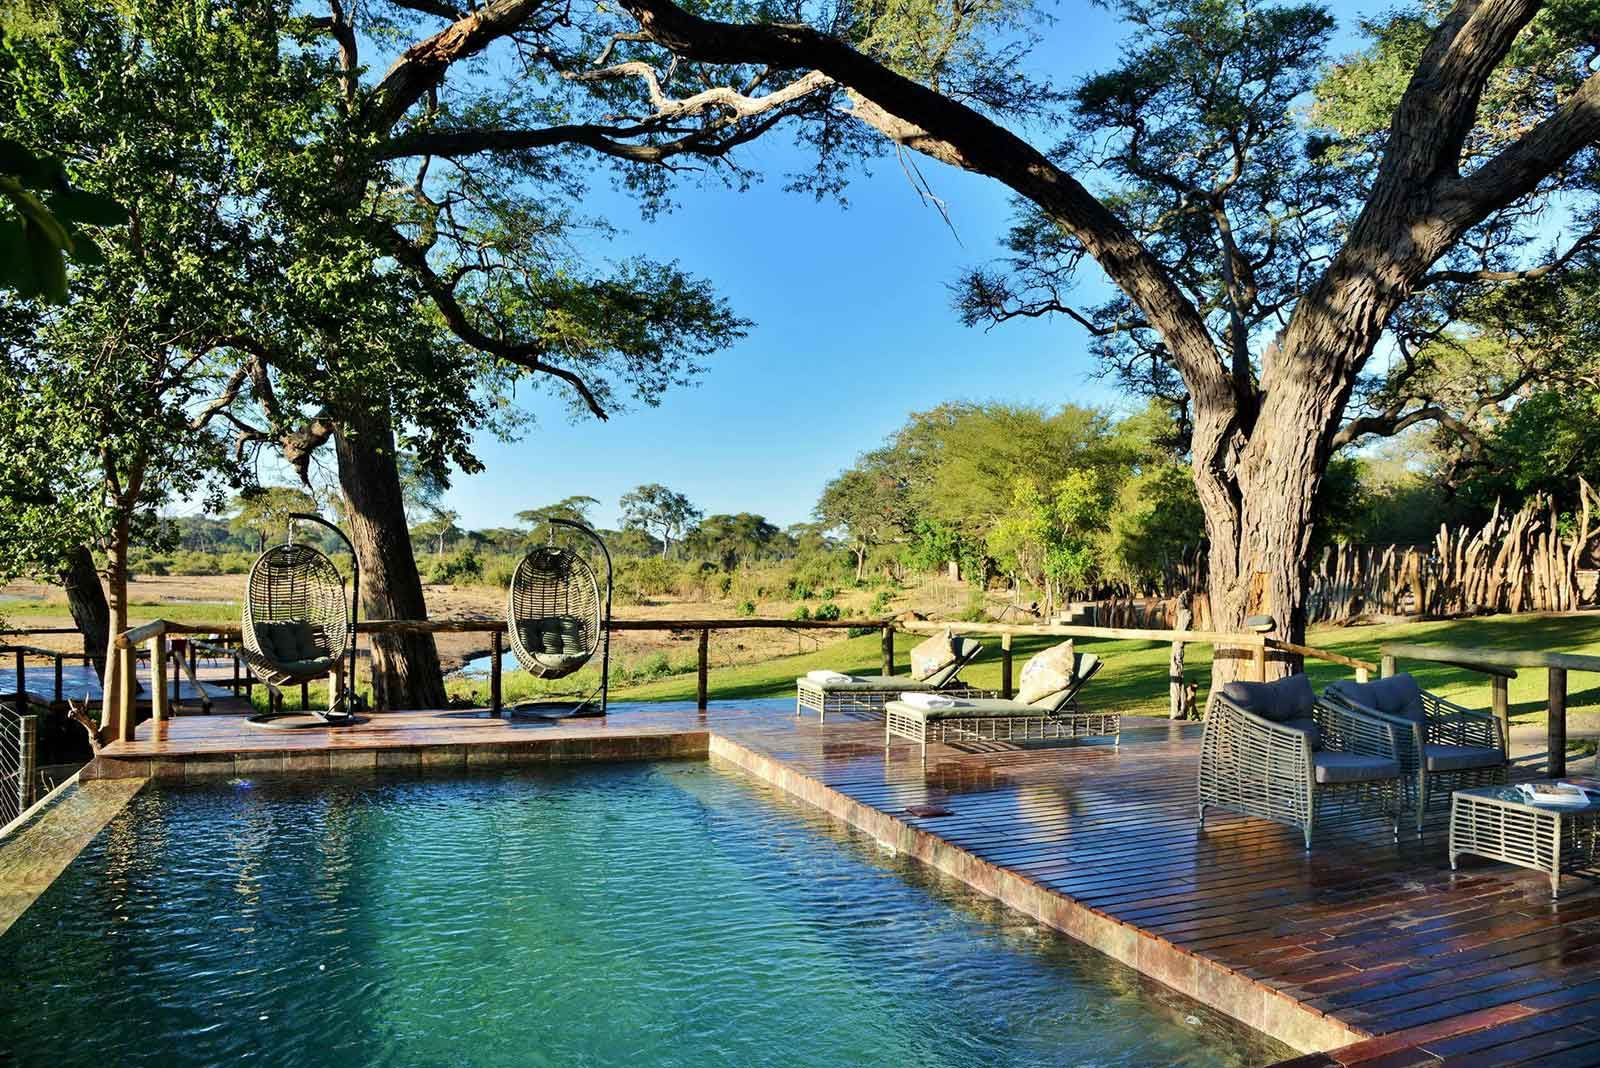 An adventurous Botswana Safari